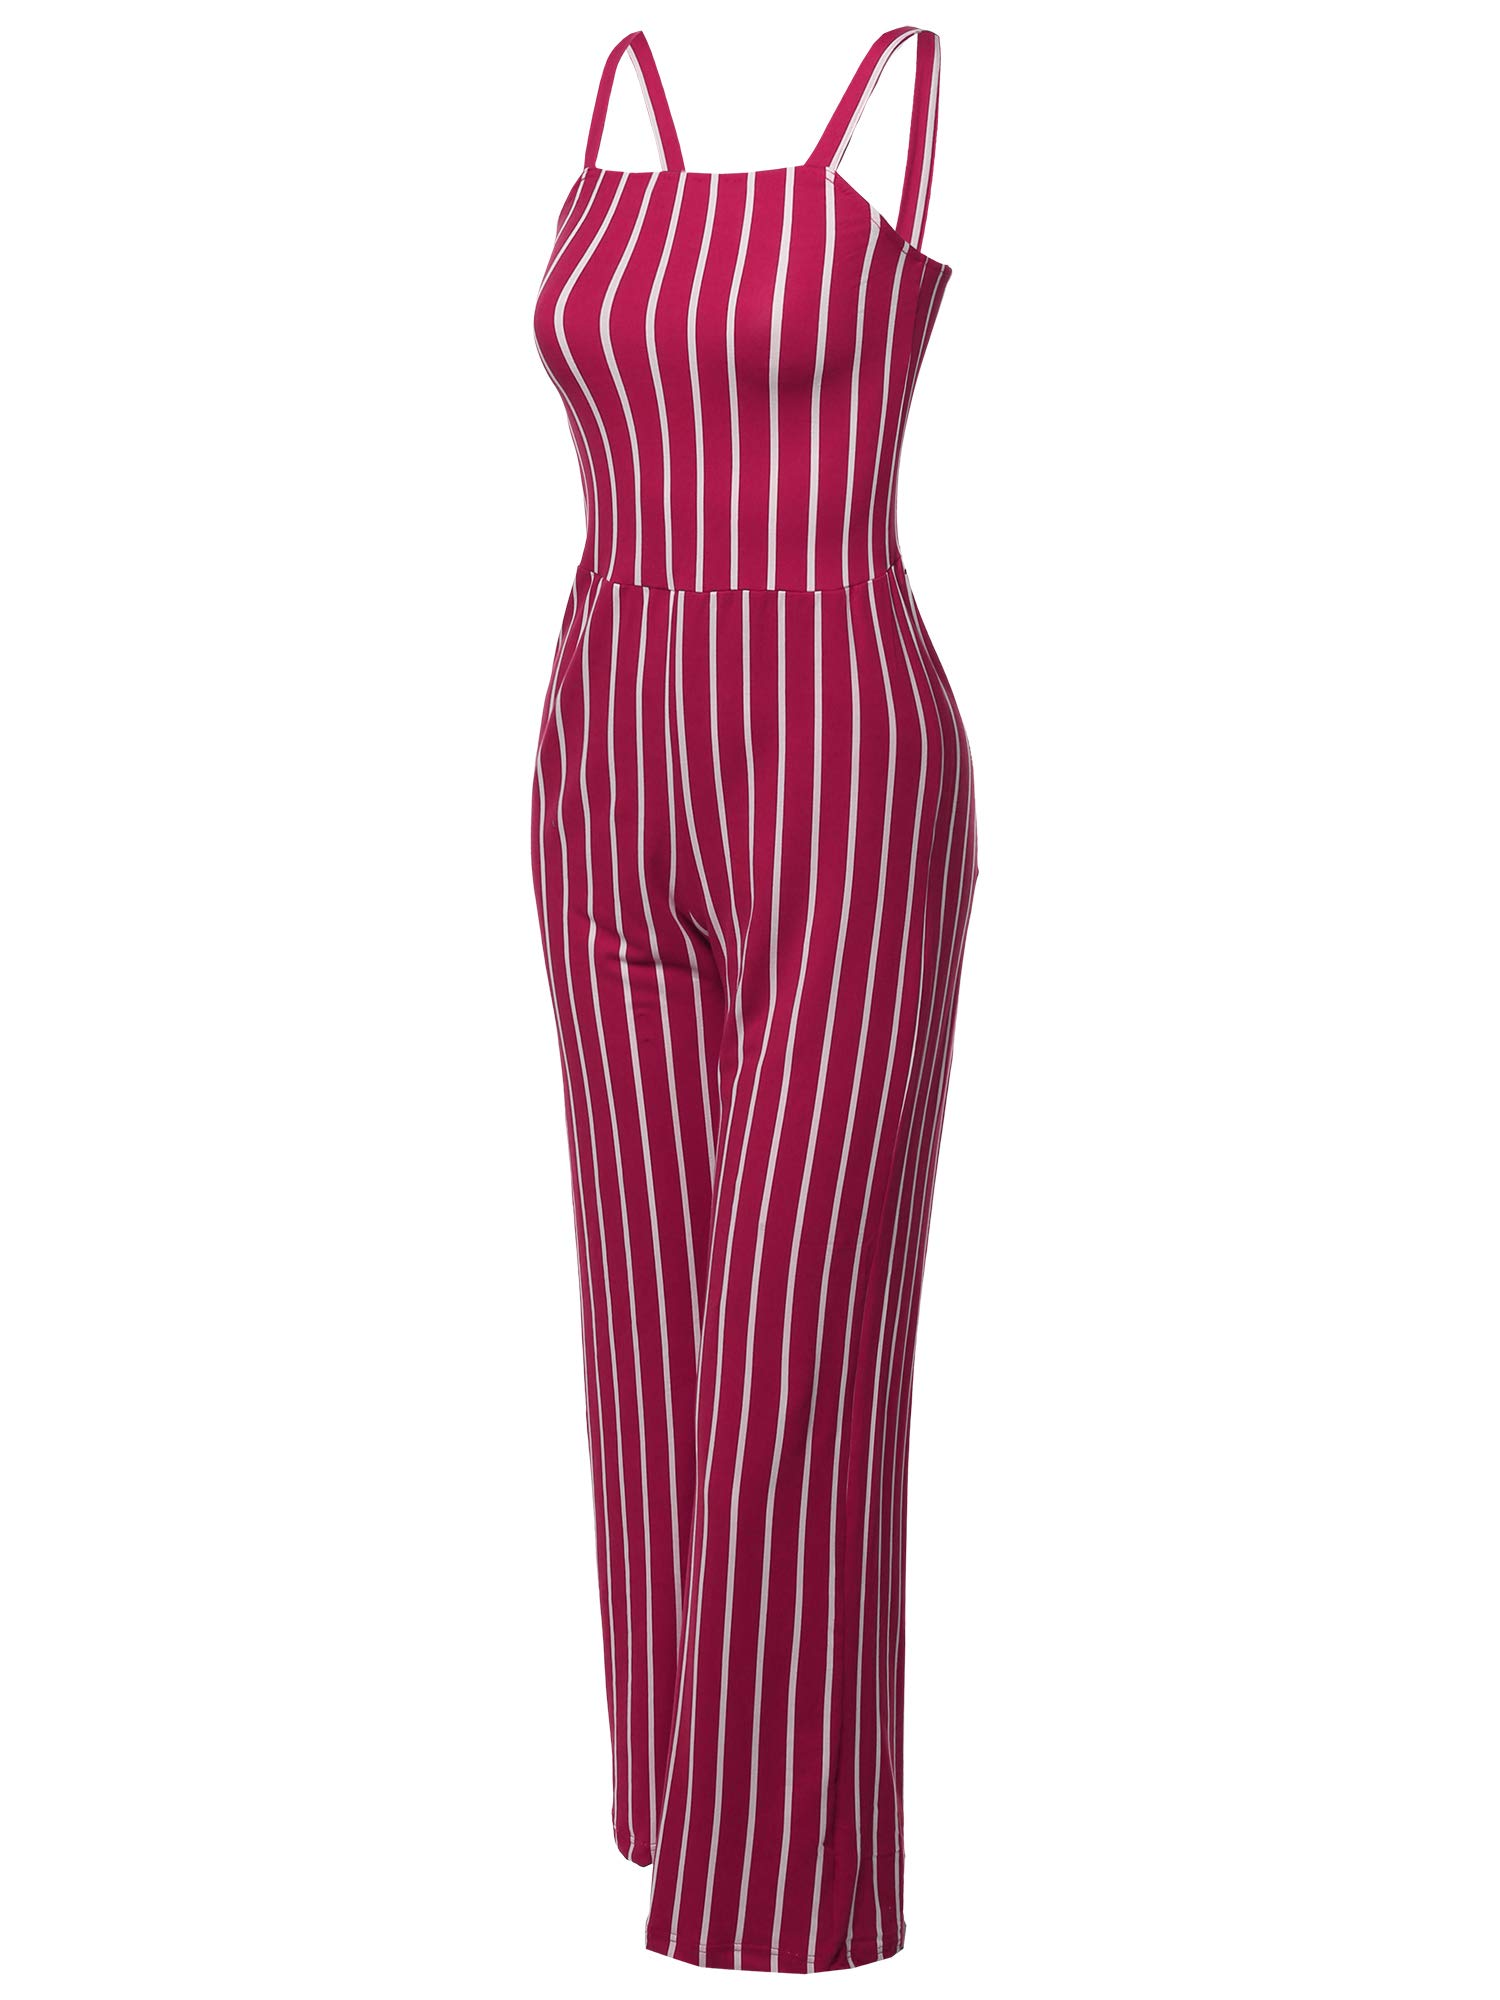 Made by Emma Casual Fashionable Stretchable Pinstripe Long Wide Leg Jumpsuit Burgundy S